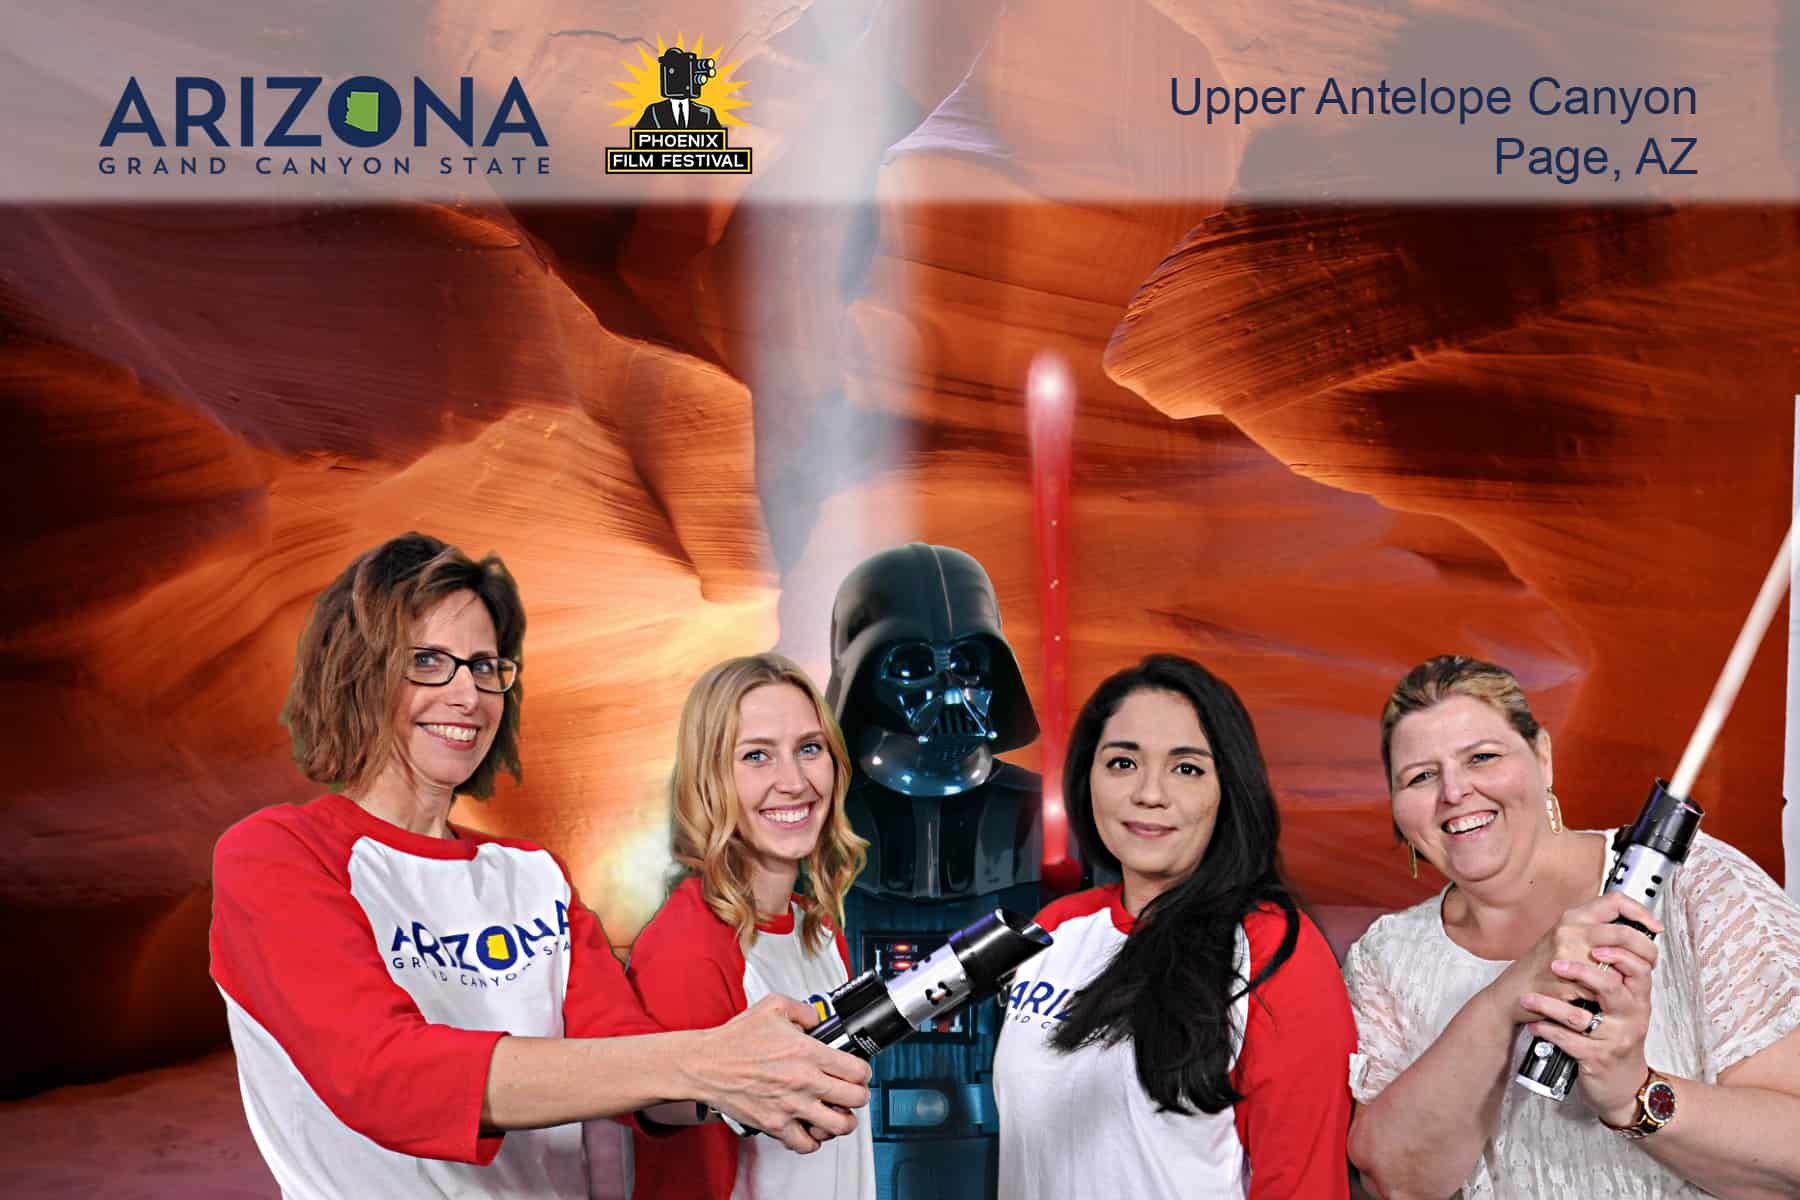 Arizona Office of Tourism Green Screen Photogrpahy 3